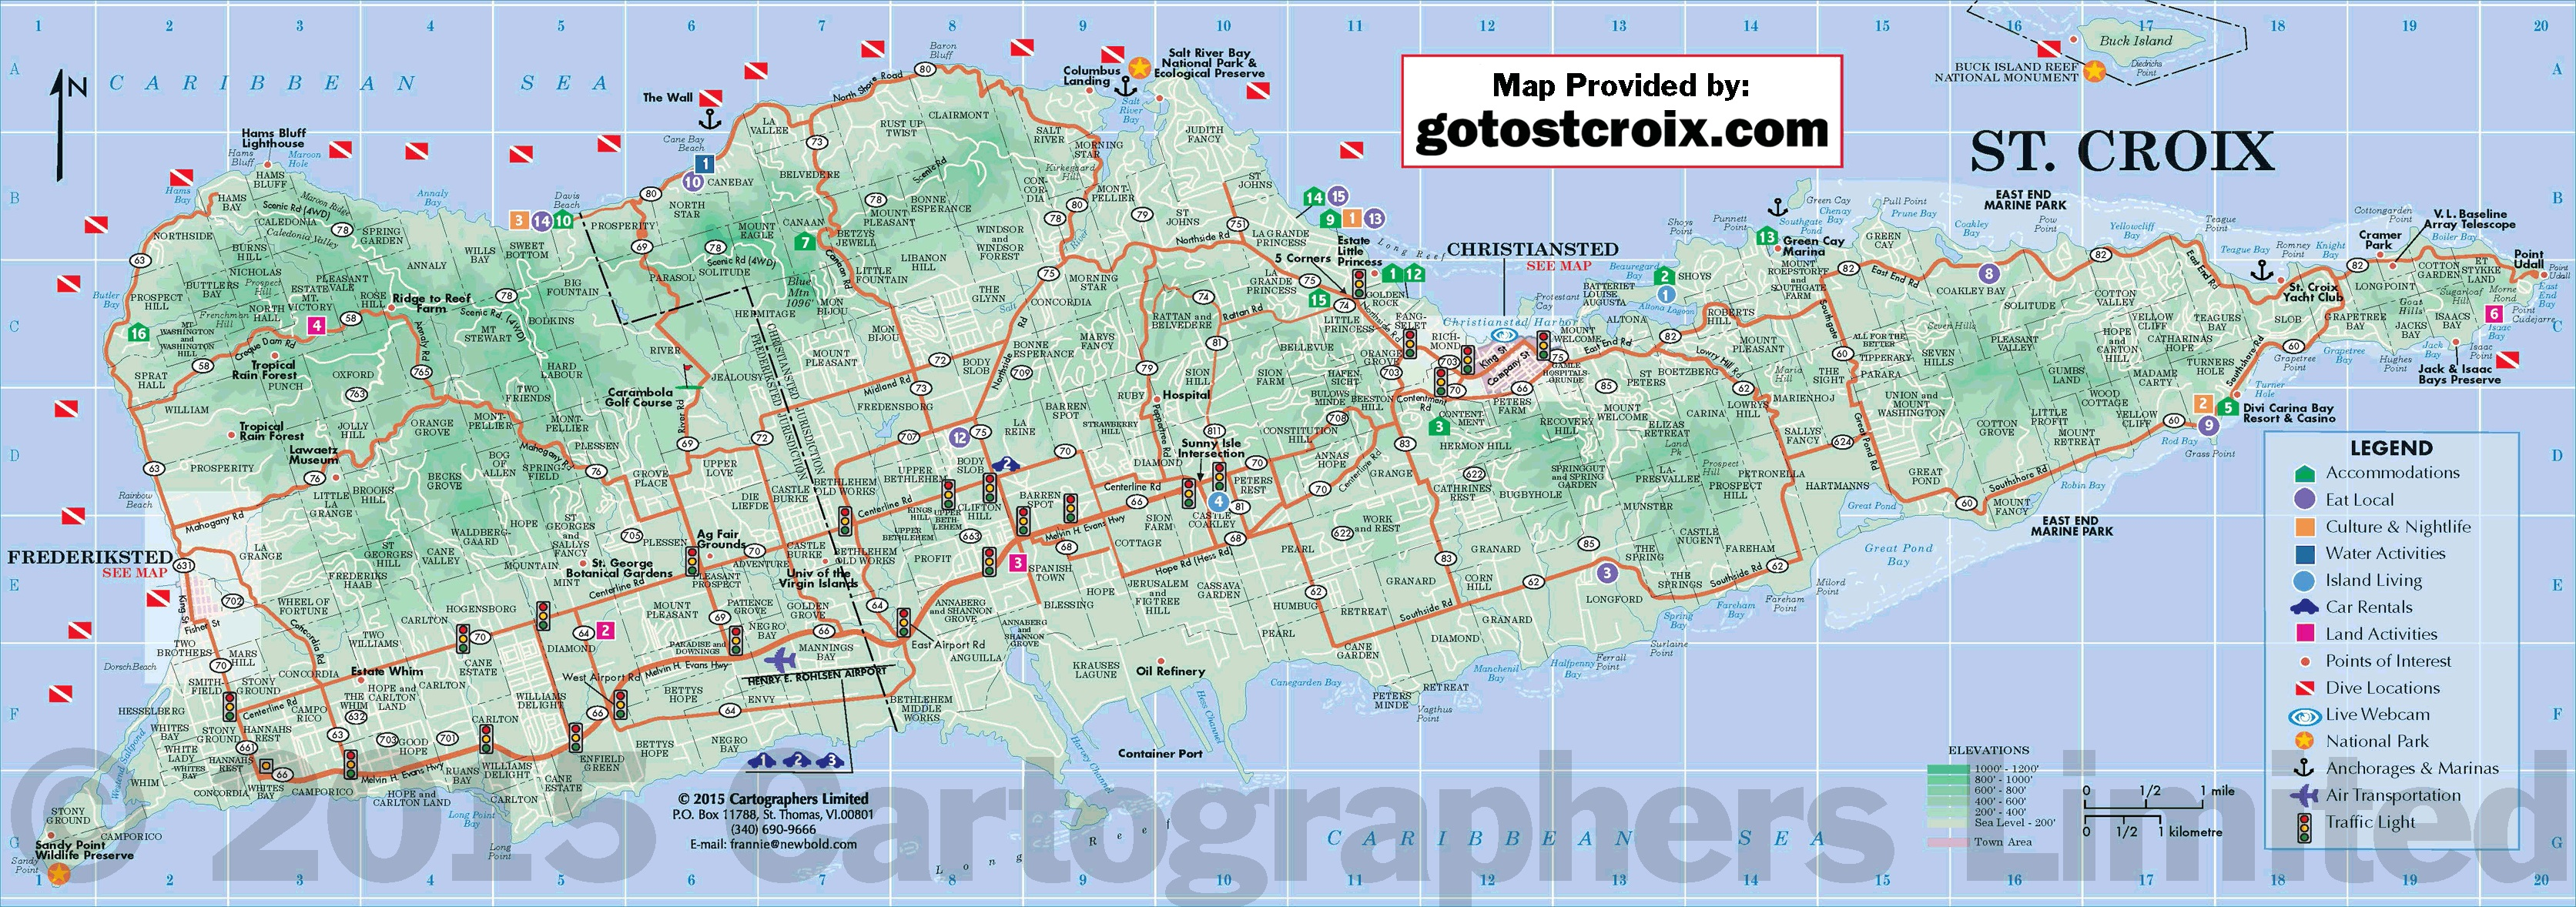 these quarters are used in particular when dealing in st croix real estate below is a saint croix map showing the